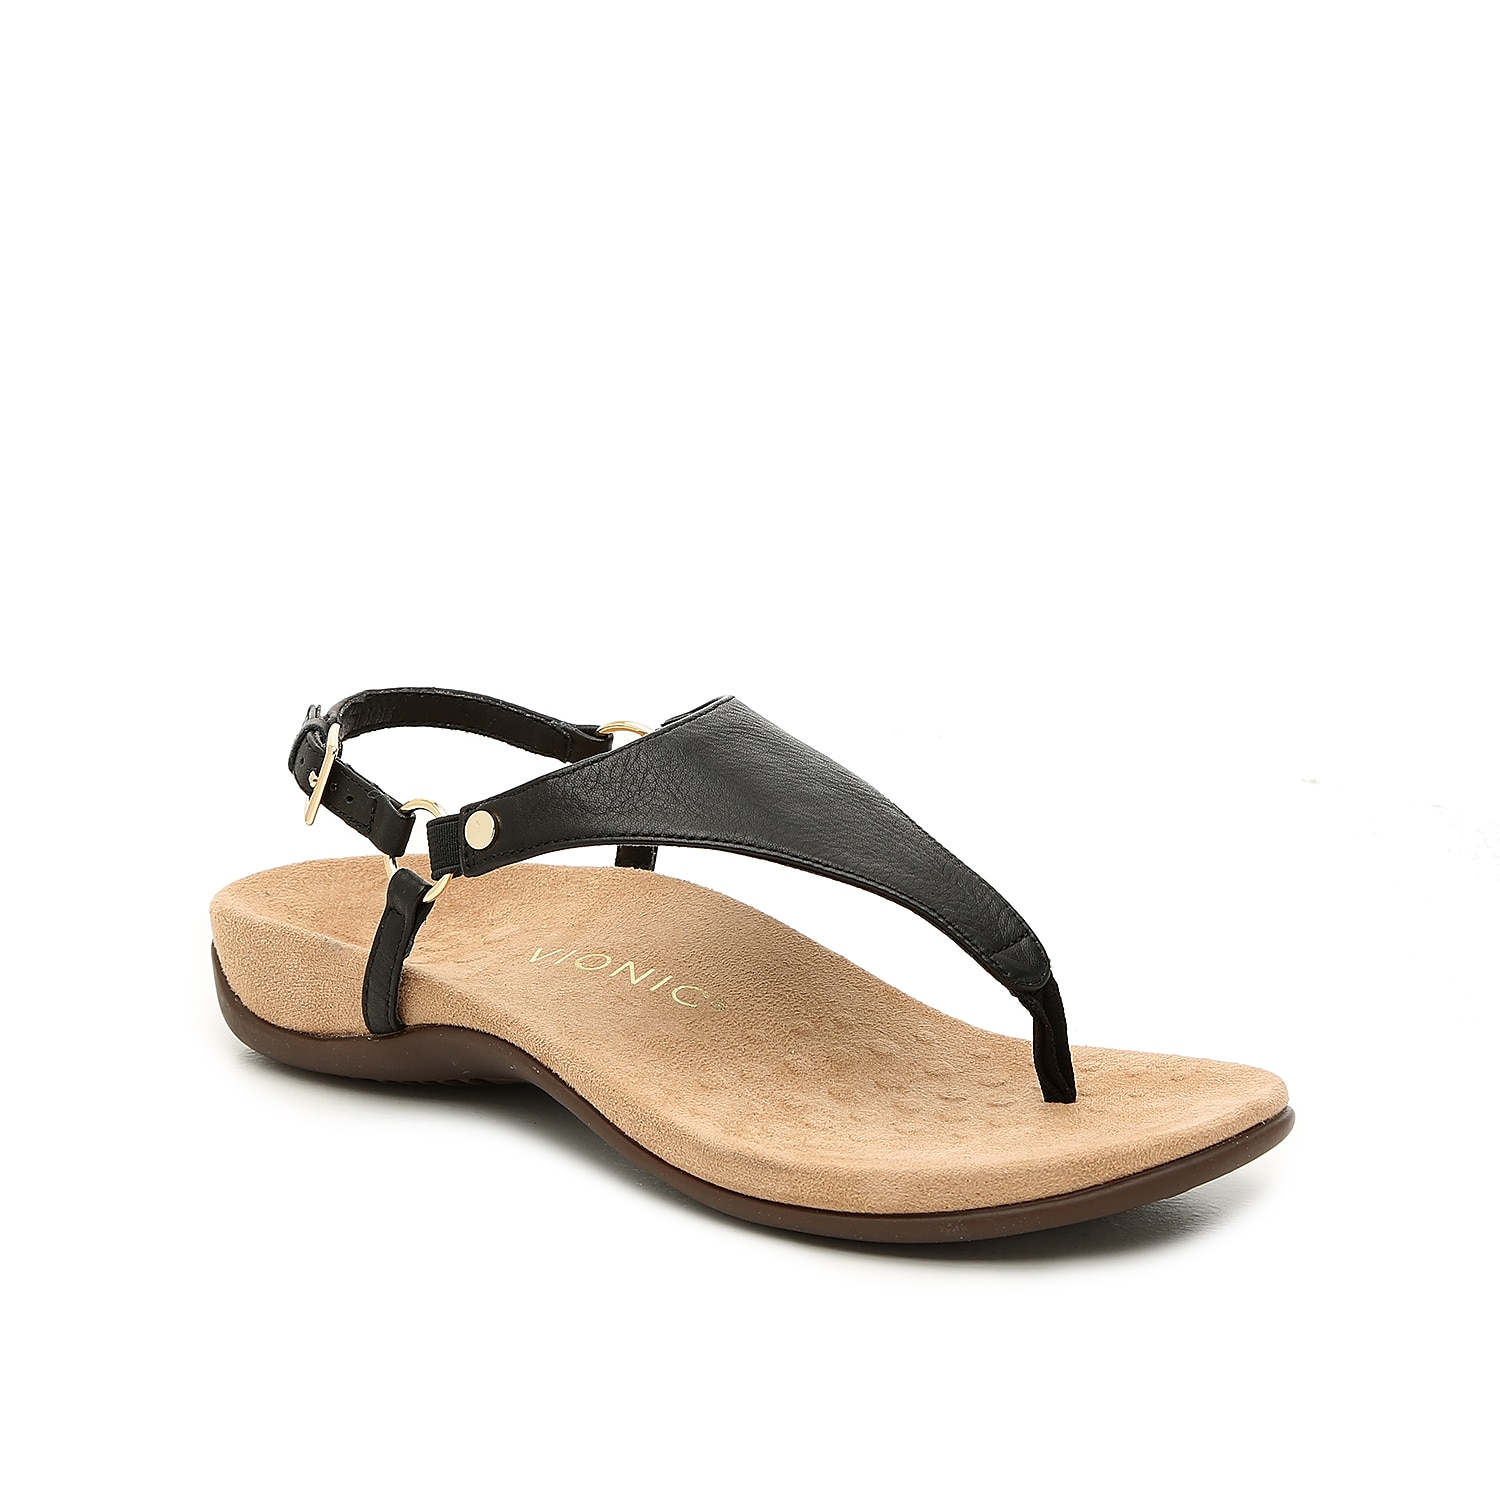 Feel supported throughout the day while wearing these Vionic sandals! The Kirra flat features a podiatrist-approved design that\\\'s contoured to the shape of your sole to provide improved cushioning at the arch and heel.